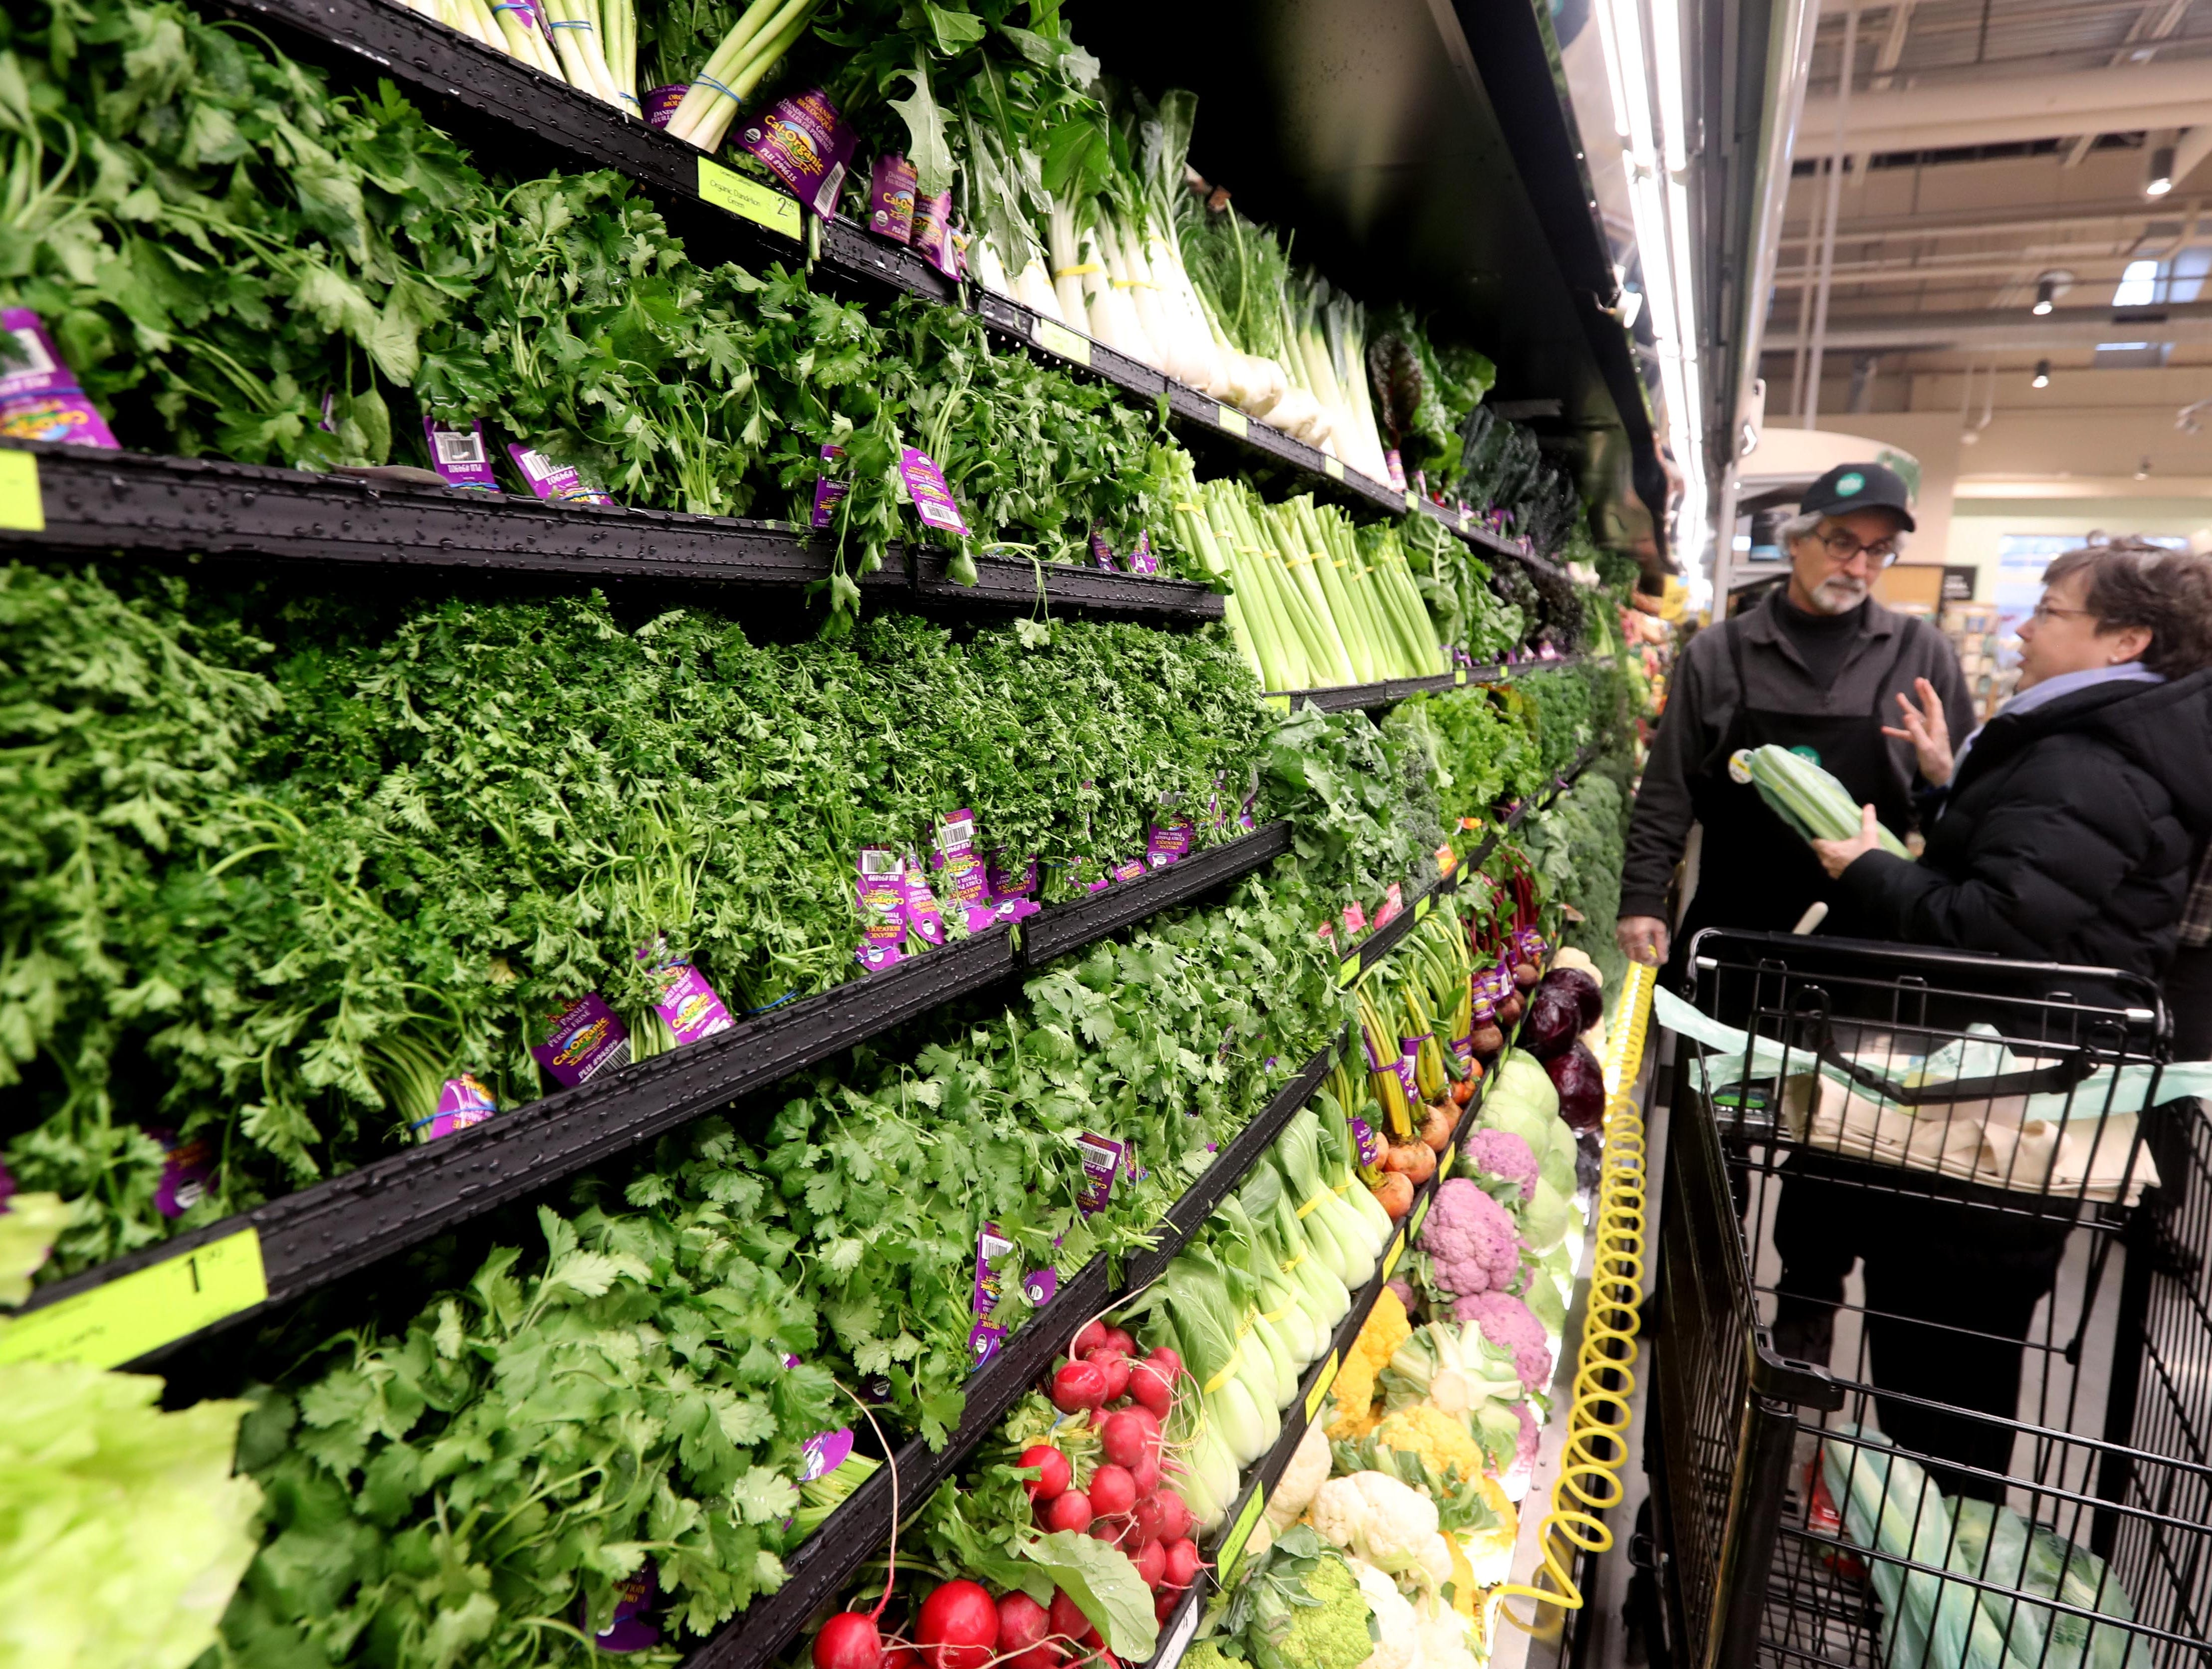 Whole Foods employee John Pollara assists Genny Holland of Pleasantville select produce in new Whole Foods in Chappaqua shortly after the grand opening of the supermarket at Chappaqua Crossing  Dec. 15, 2018. The 40,000 square foot store opened to shoppers on the site of the formers Readers Digest headquarters. The New Castle Town Board and Planning Board approved a temporary traffic plan for the Route 117-Roaring Brook Road intersection that allowed the store to open.